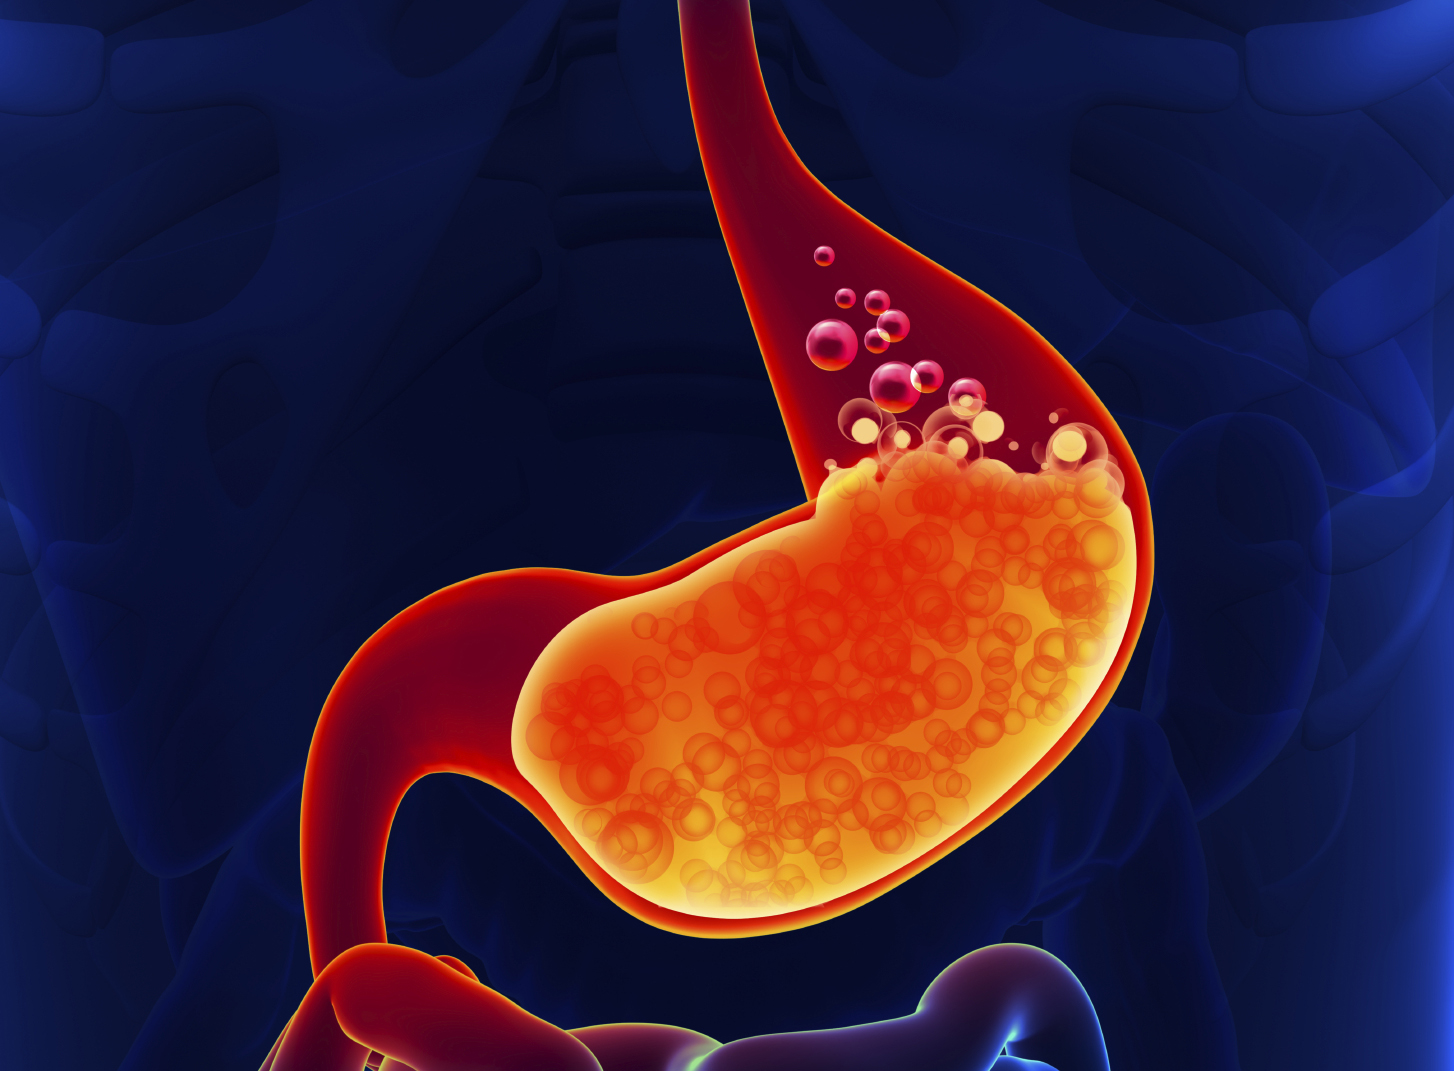 indigestion heartburn stomach ache small iStock 000041361180 Medium - 8 ways to quell the fire of heartburn